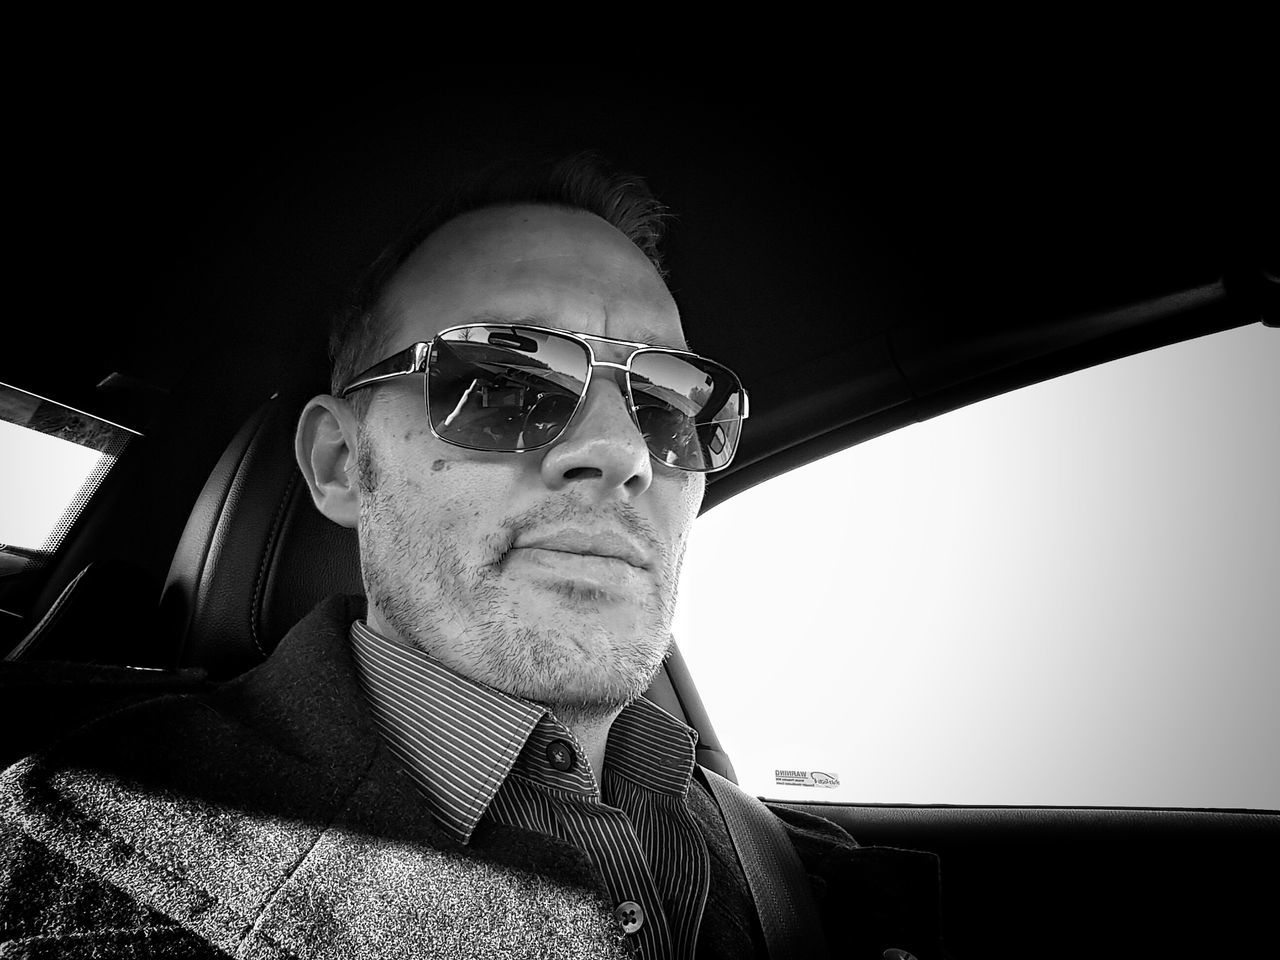 A portrait of a scruffy Englishman (me) One Man Only Headshot Close-up Selfie ✌ Stubblephotography Stubble Reflective Sunglasses Blackandwhite Black And White Photography In A Car Vanity